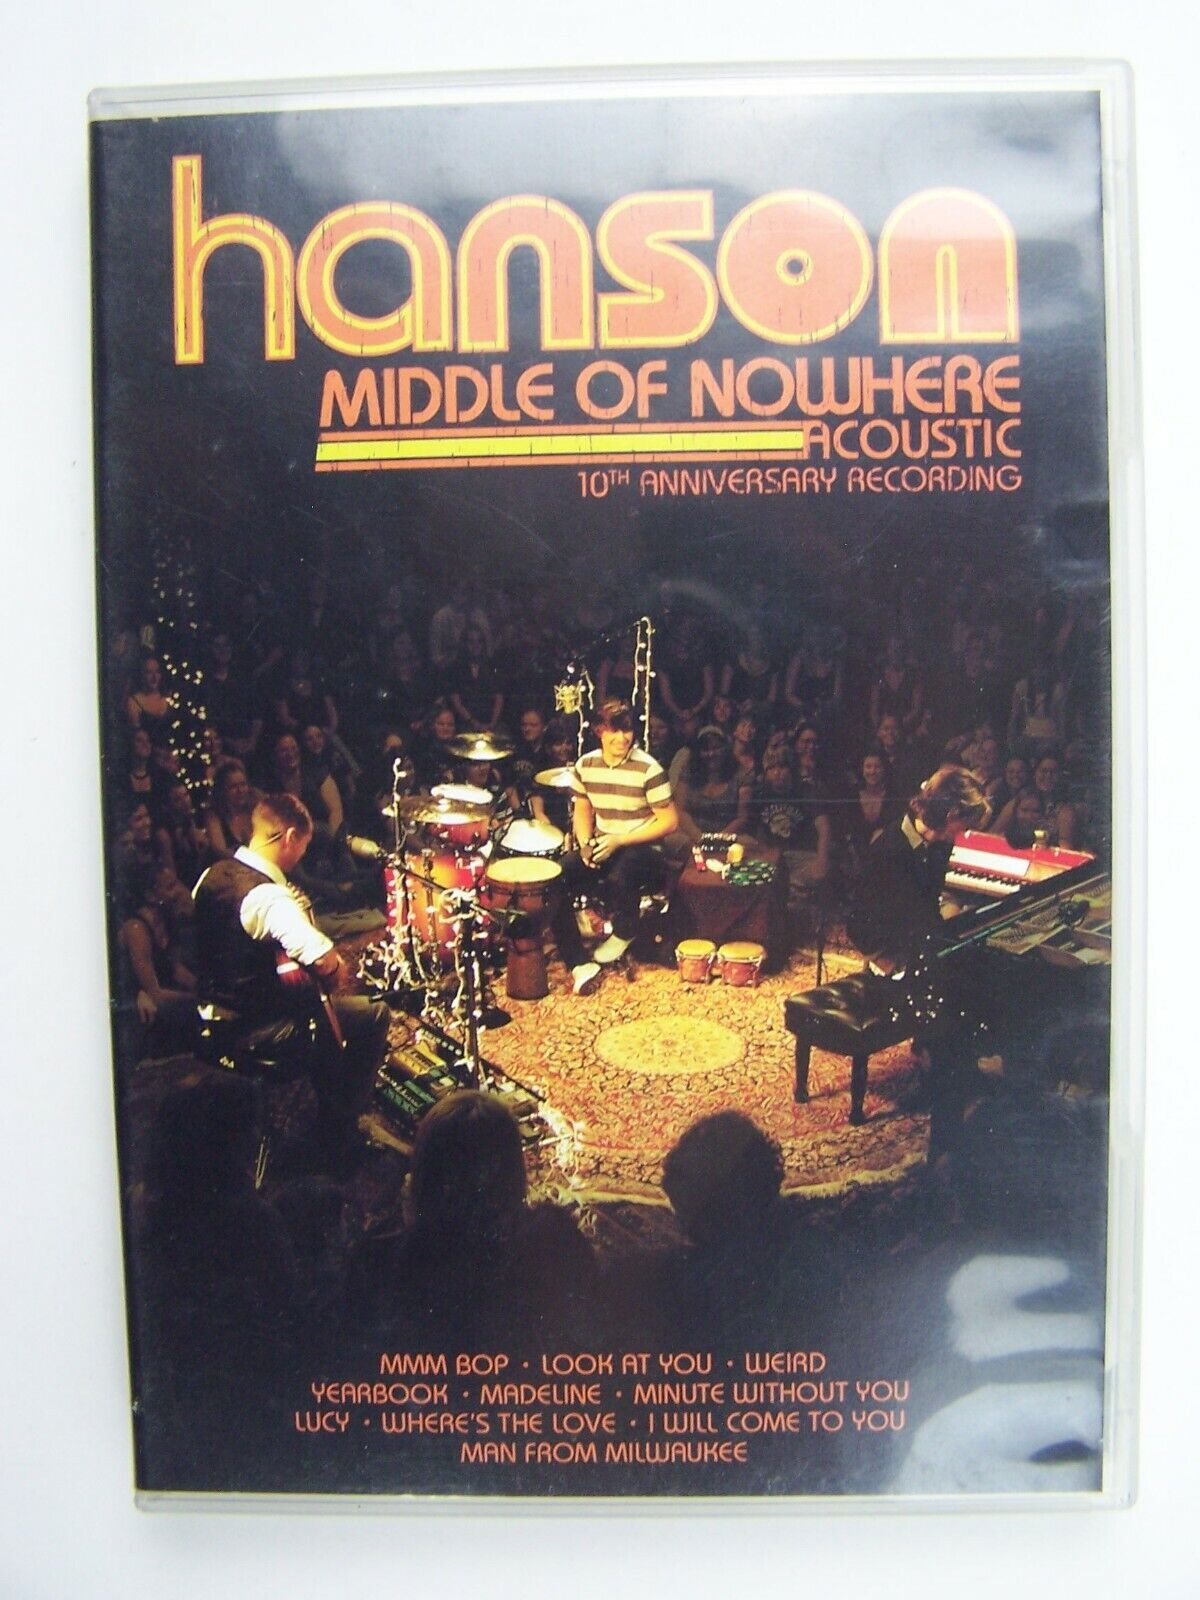 Hanson Middle of Nowhere Acoustic 10th Anniversary Reco